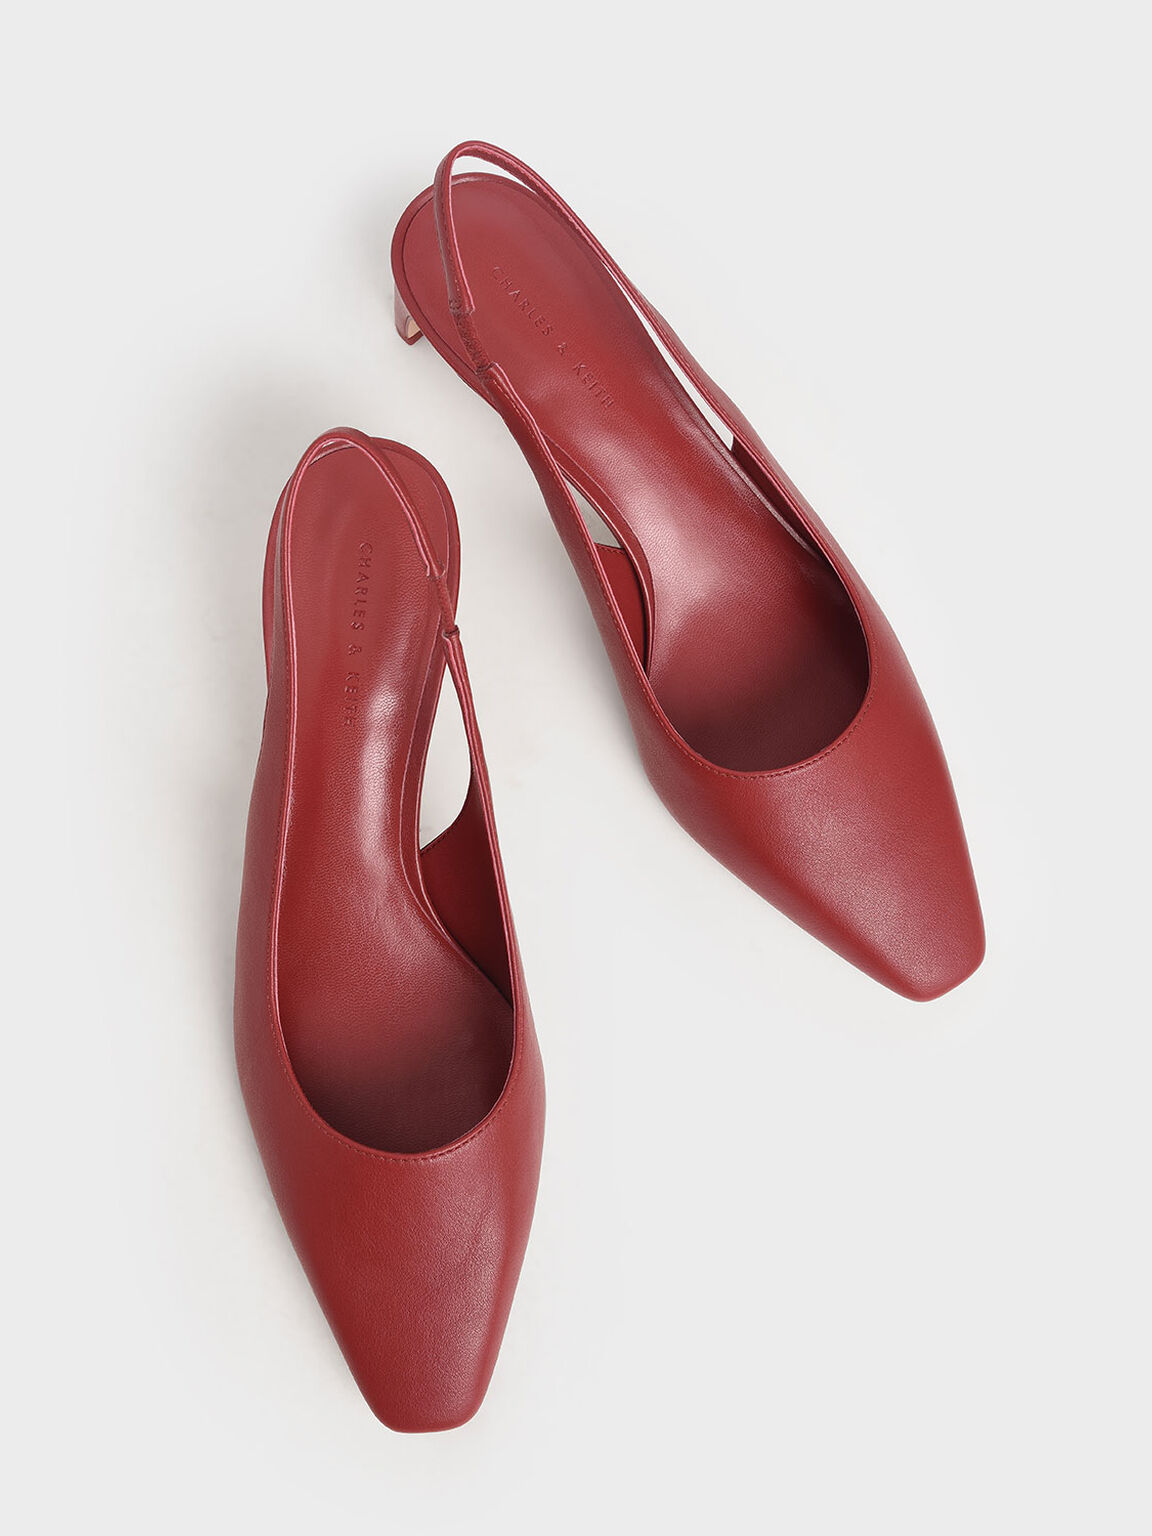 Blade Heel Slingback Pumps, Red, hi-res